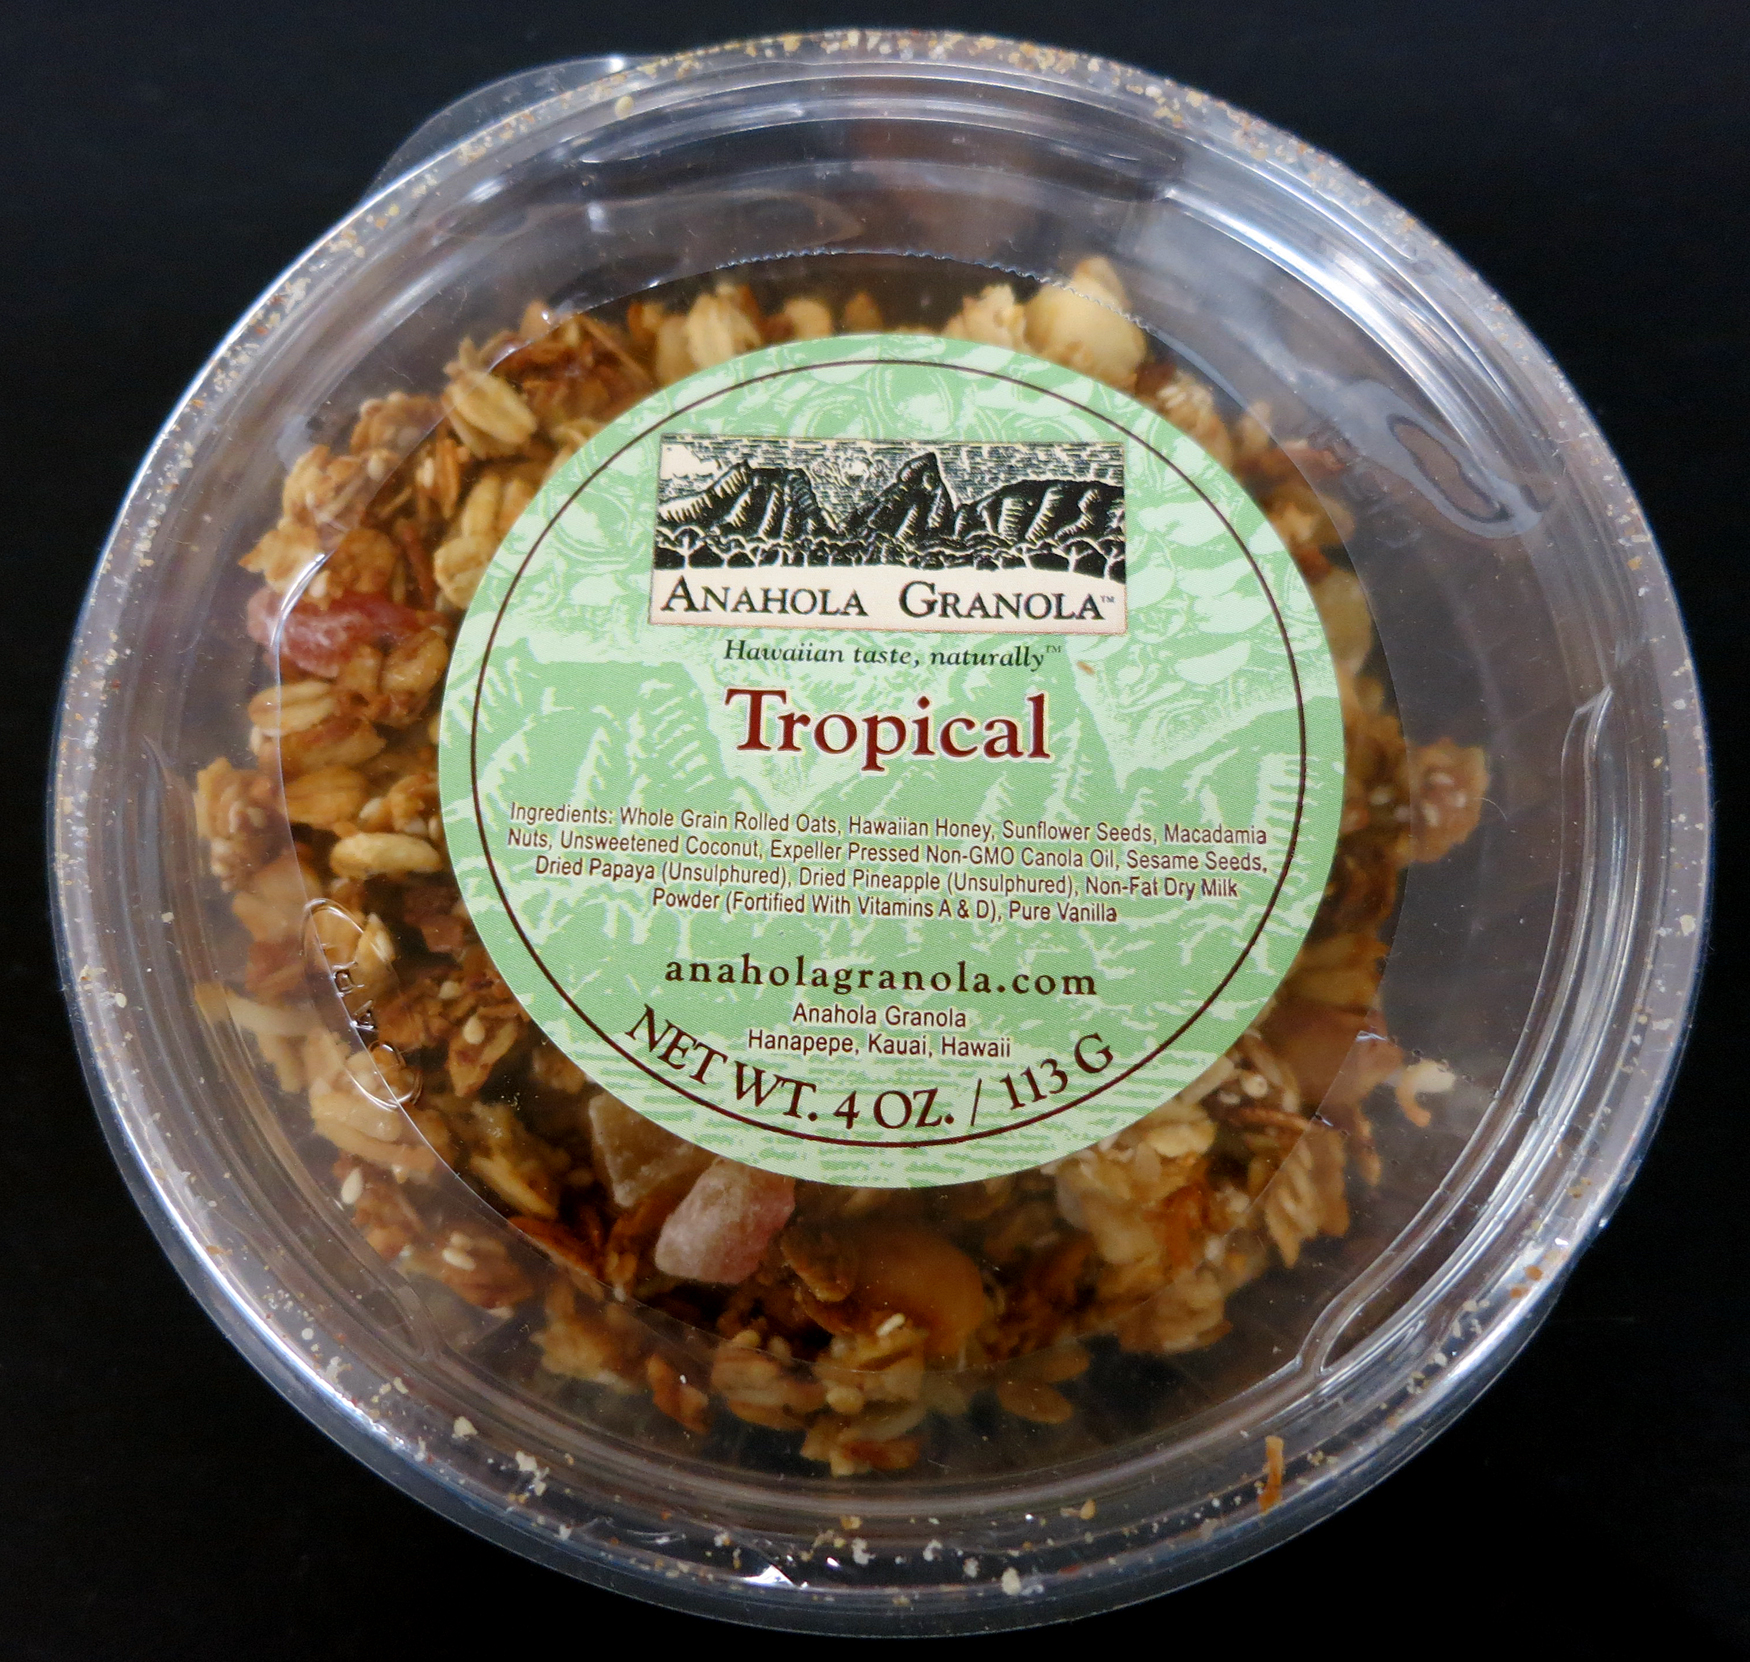 """This is described as """"Tropical Granola is made from sun ripened ..."""